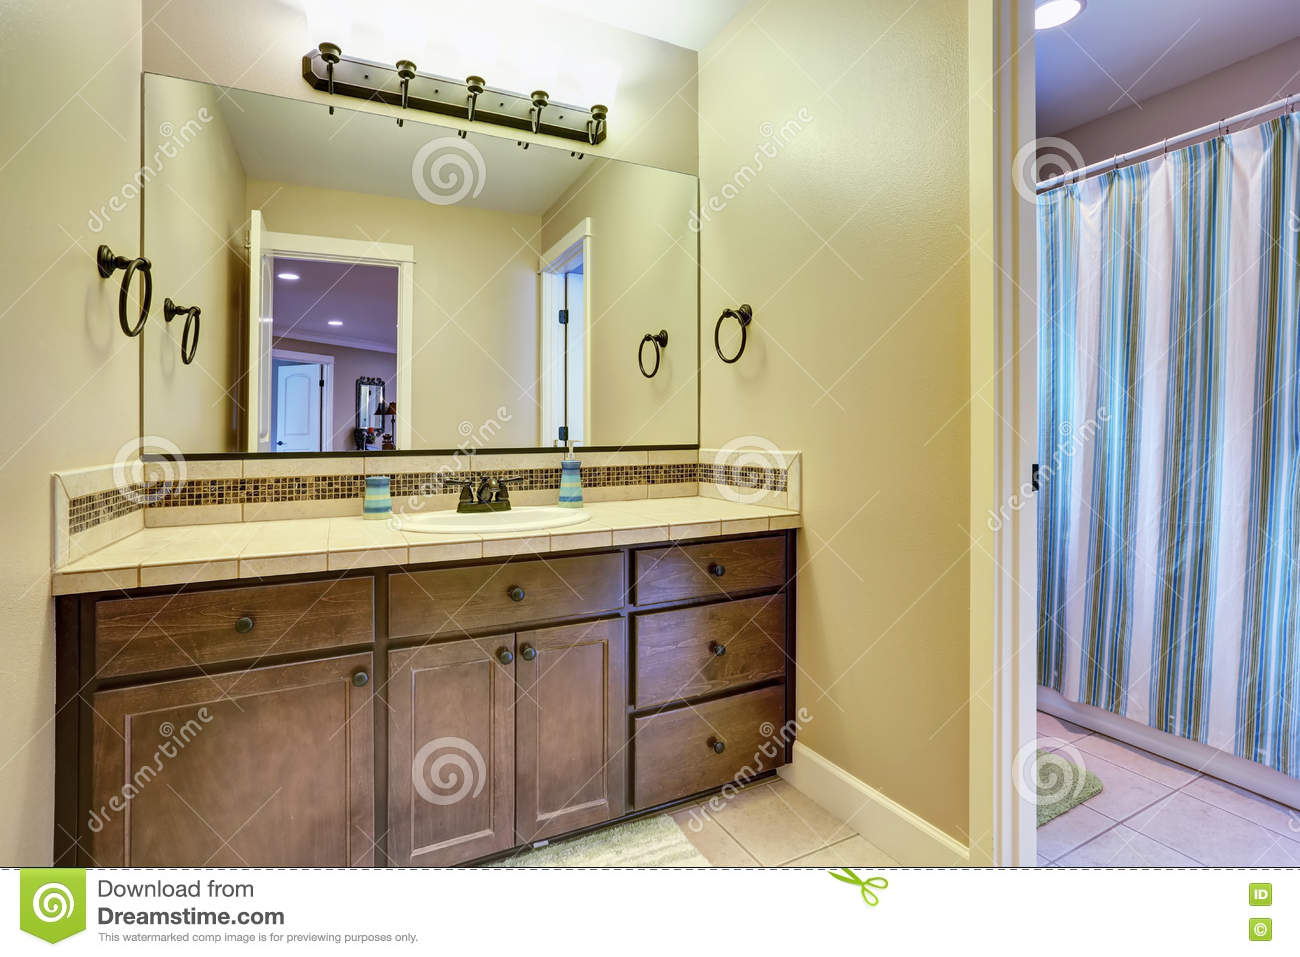 Typical American Bathroom Interior Design Stock Photo Image Of Renovated Indoor 75666900